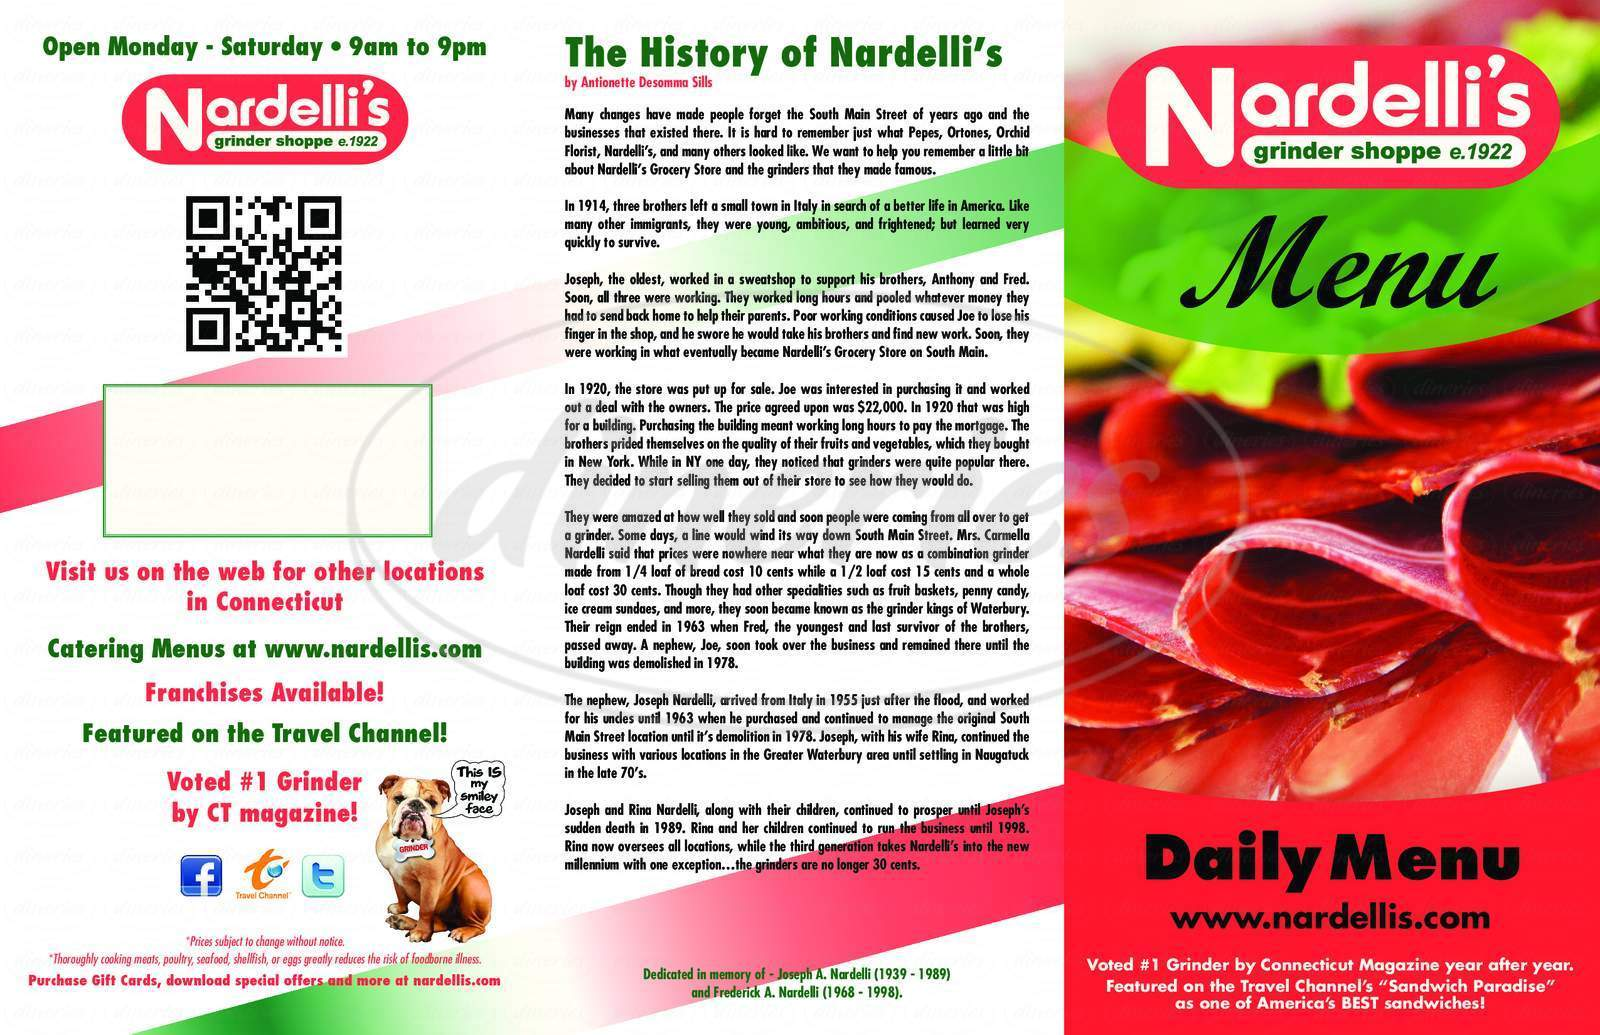 menu for Nardelli's Grinder Shoppe